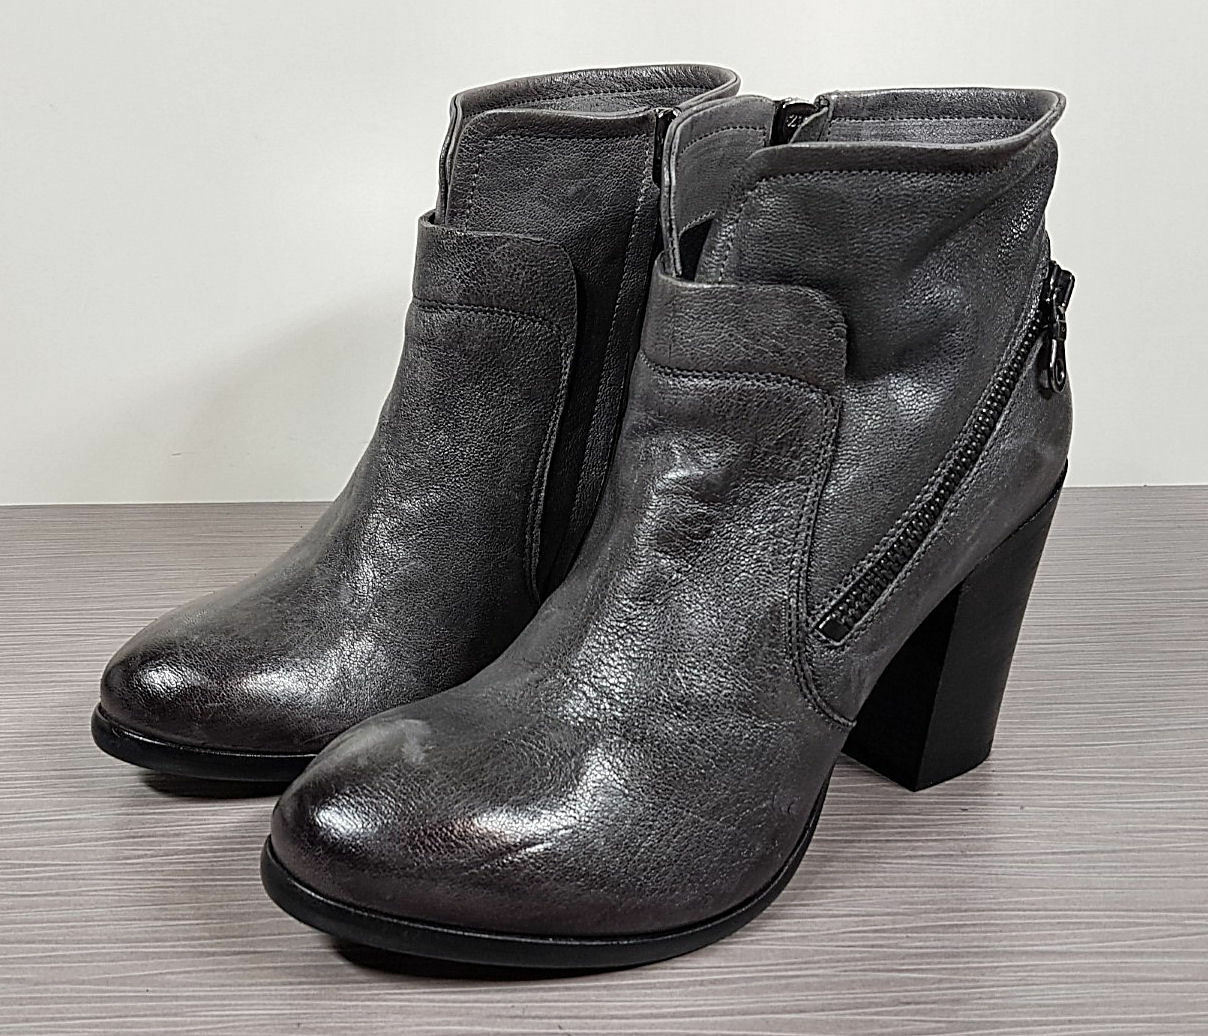 KBR Grey Leather Bootie, Womens size 10 / 40